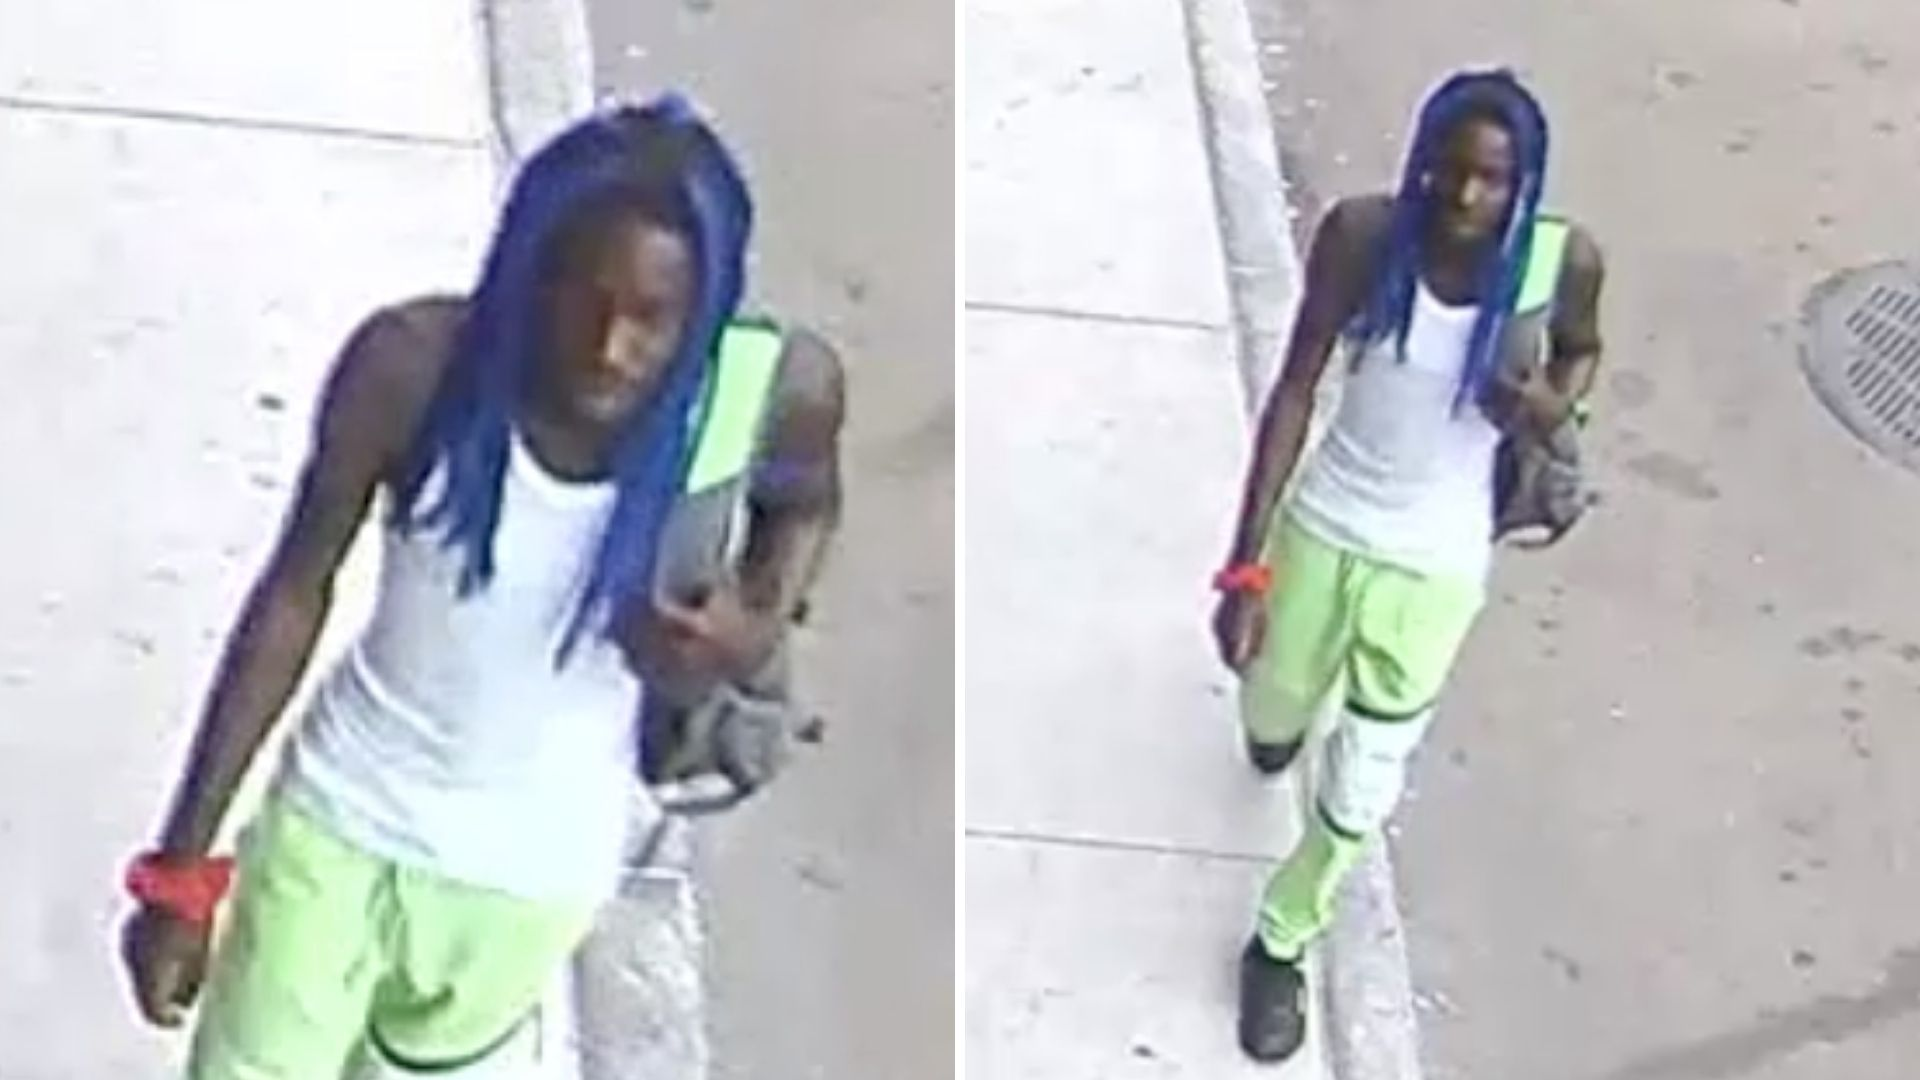 Suspect in possible hate crime attack on Asian man in Flatiron